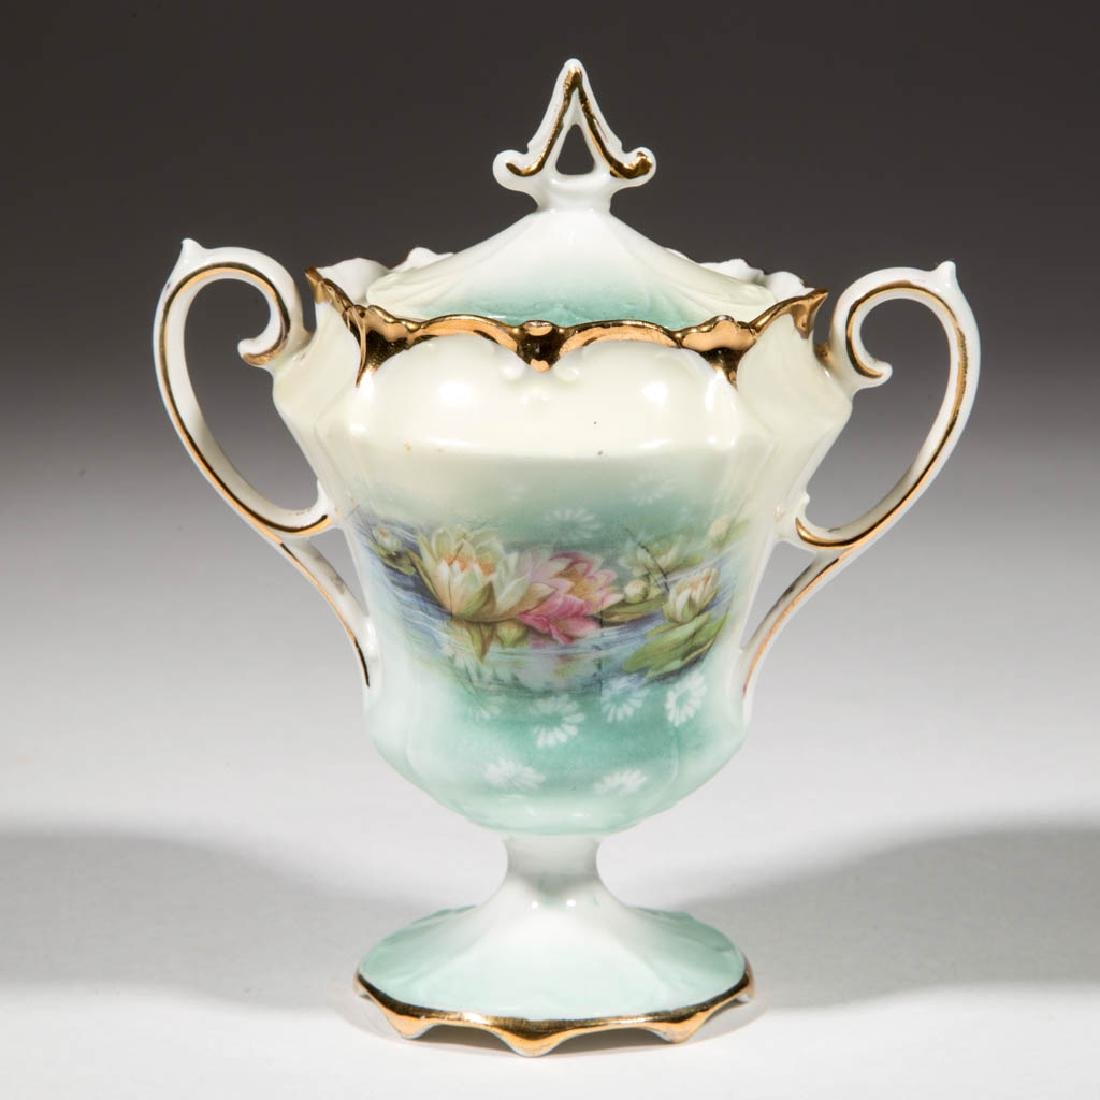 R.S. PRUSSIA CERAMIC SUGAR BOWL